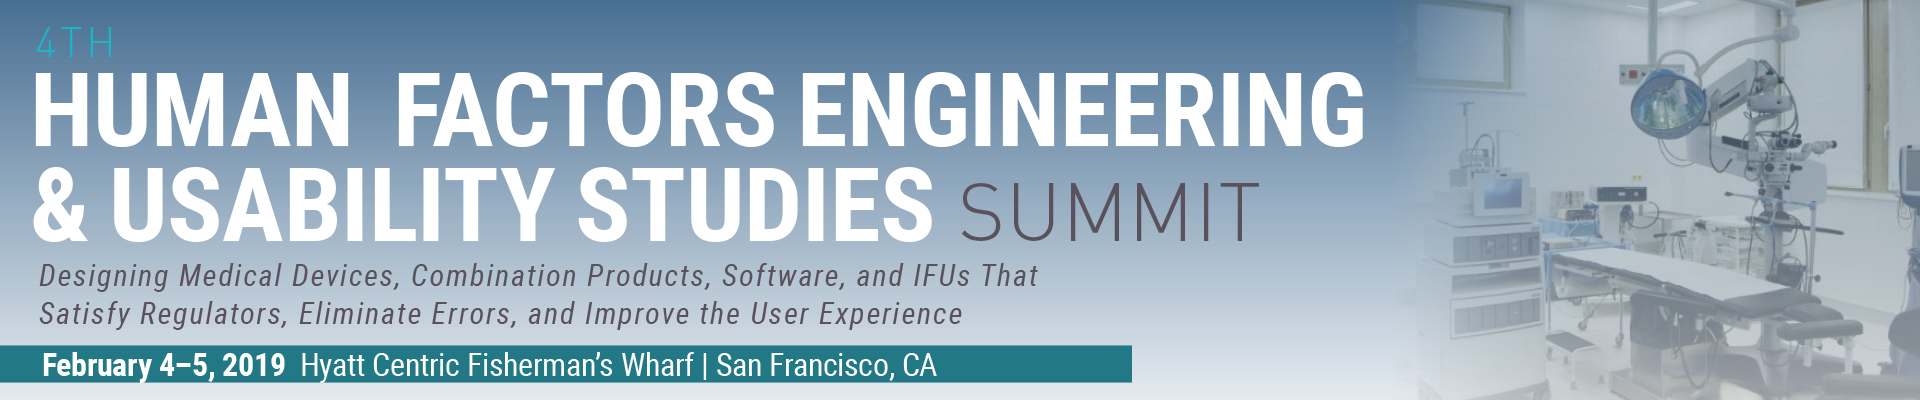 4th Human Factors Engineering & Usability Studies Summit